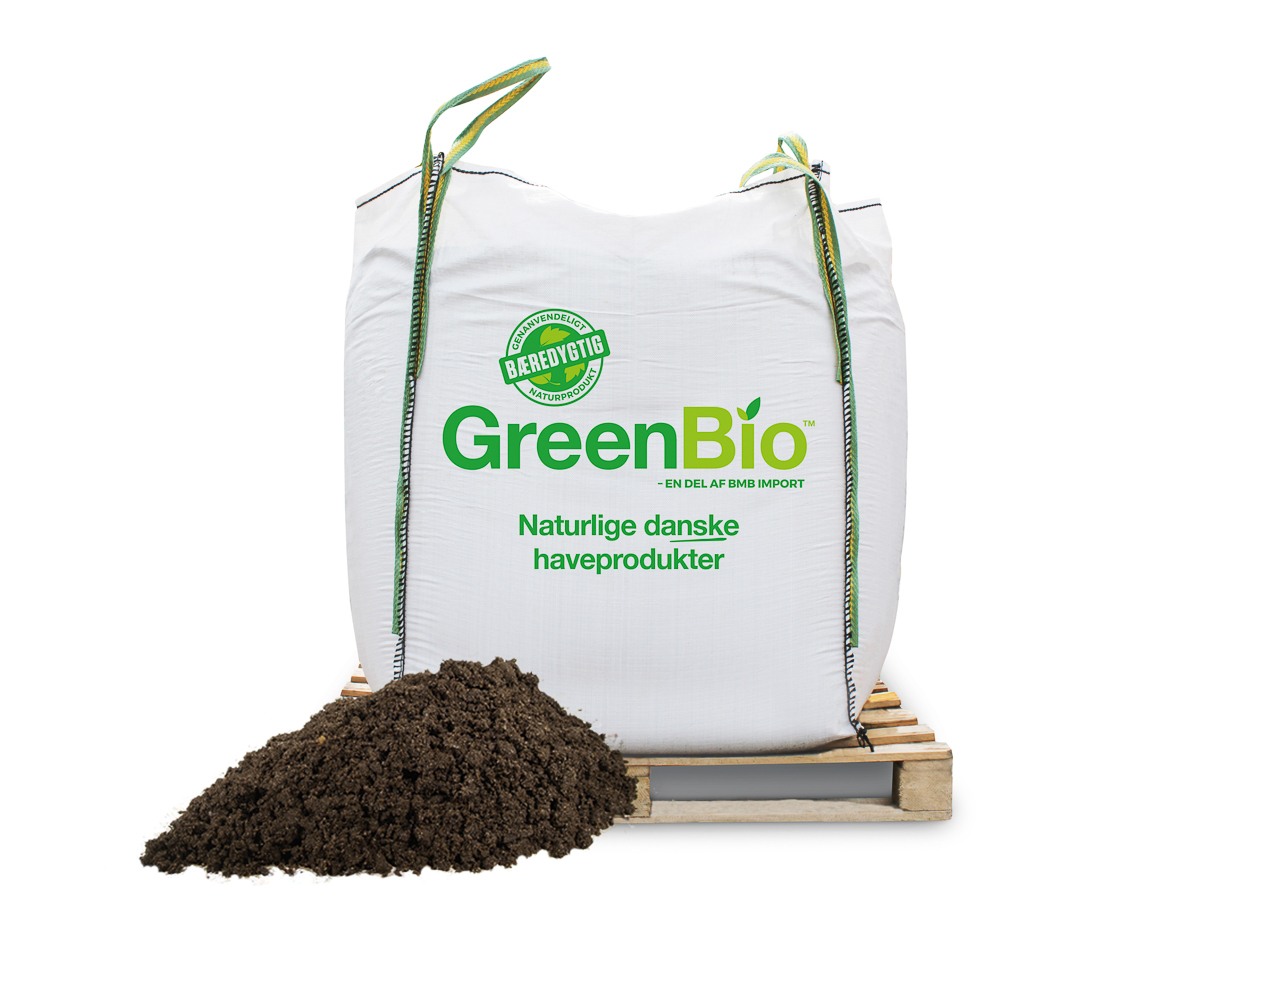 Image of GreenBio Gartnermuld 0-20 mm. Bigbag á 1000 liter